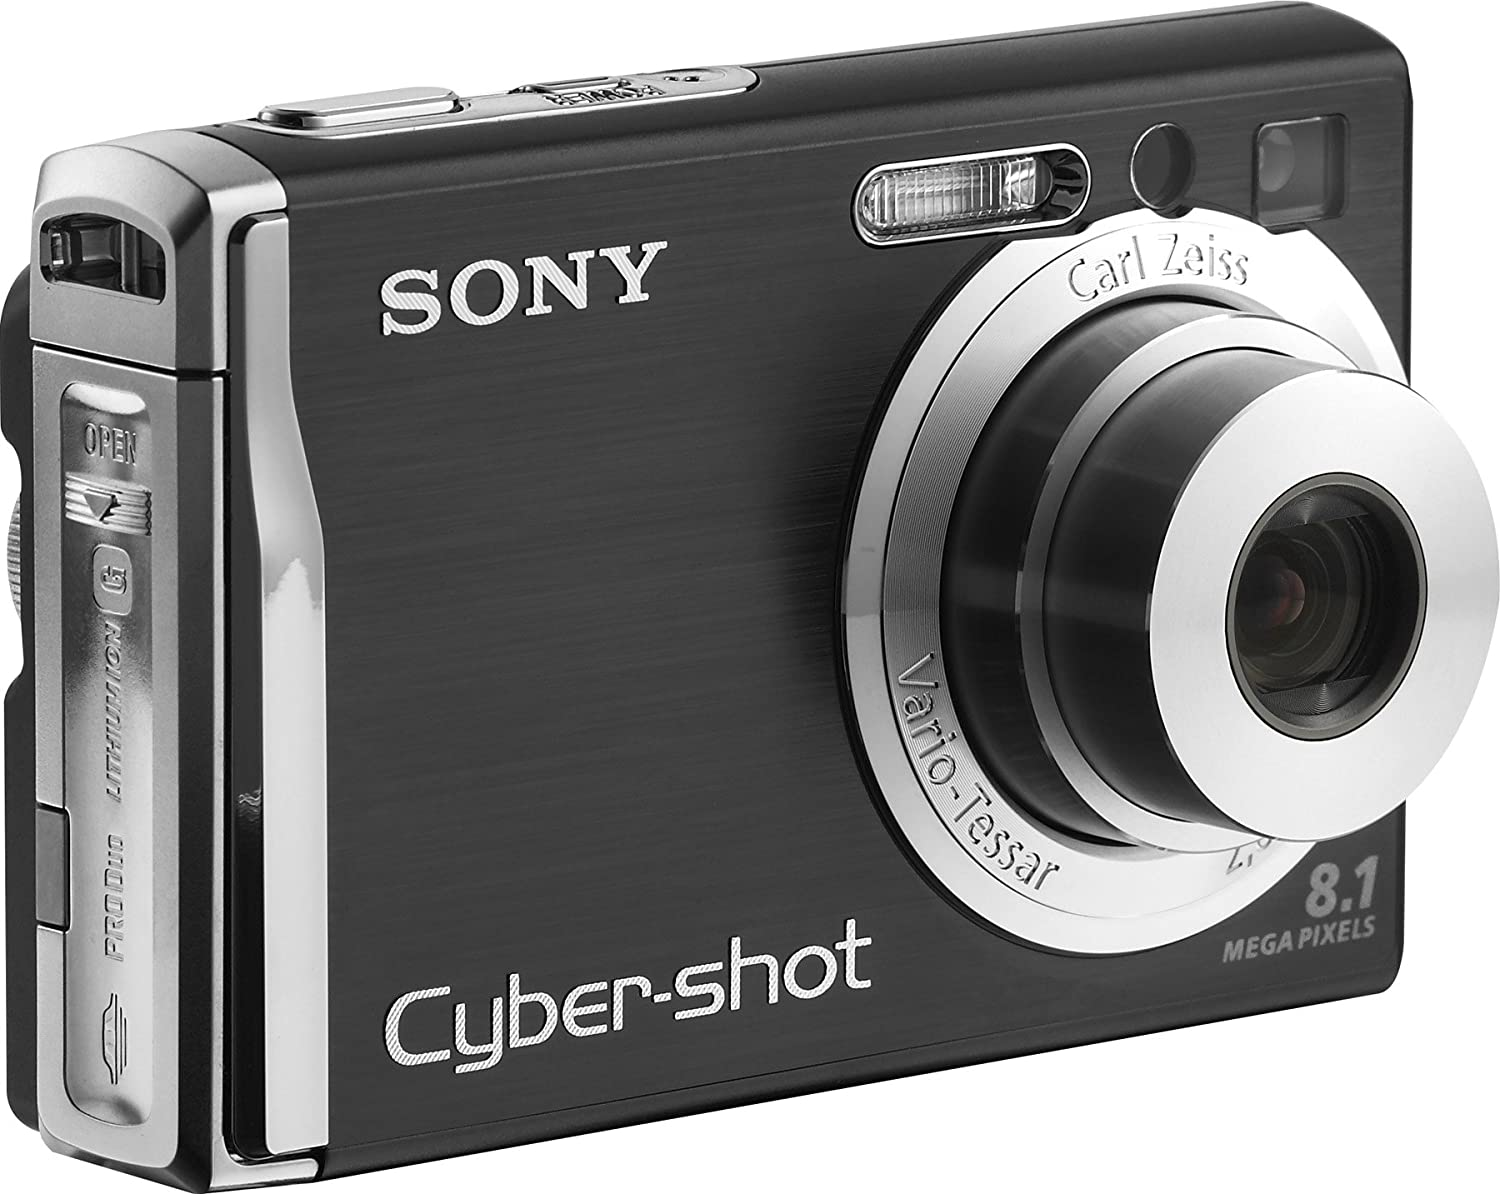 Amazon.com : Sony Cybershot DSCW90 8.1MP Digital Camera with 3x Optical  Zoom and Super Steady Shot (Black) : Point And Shoot Digital Cameras :  Camera & ...